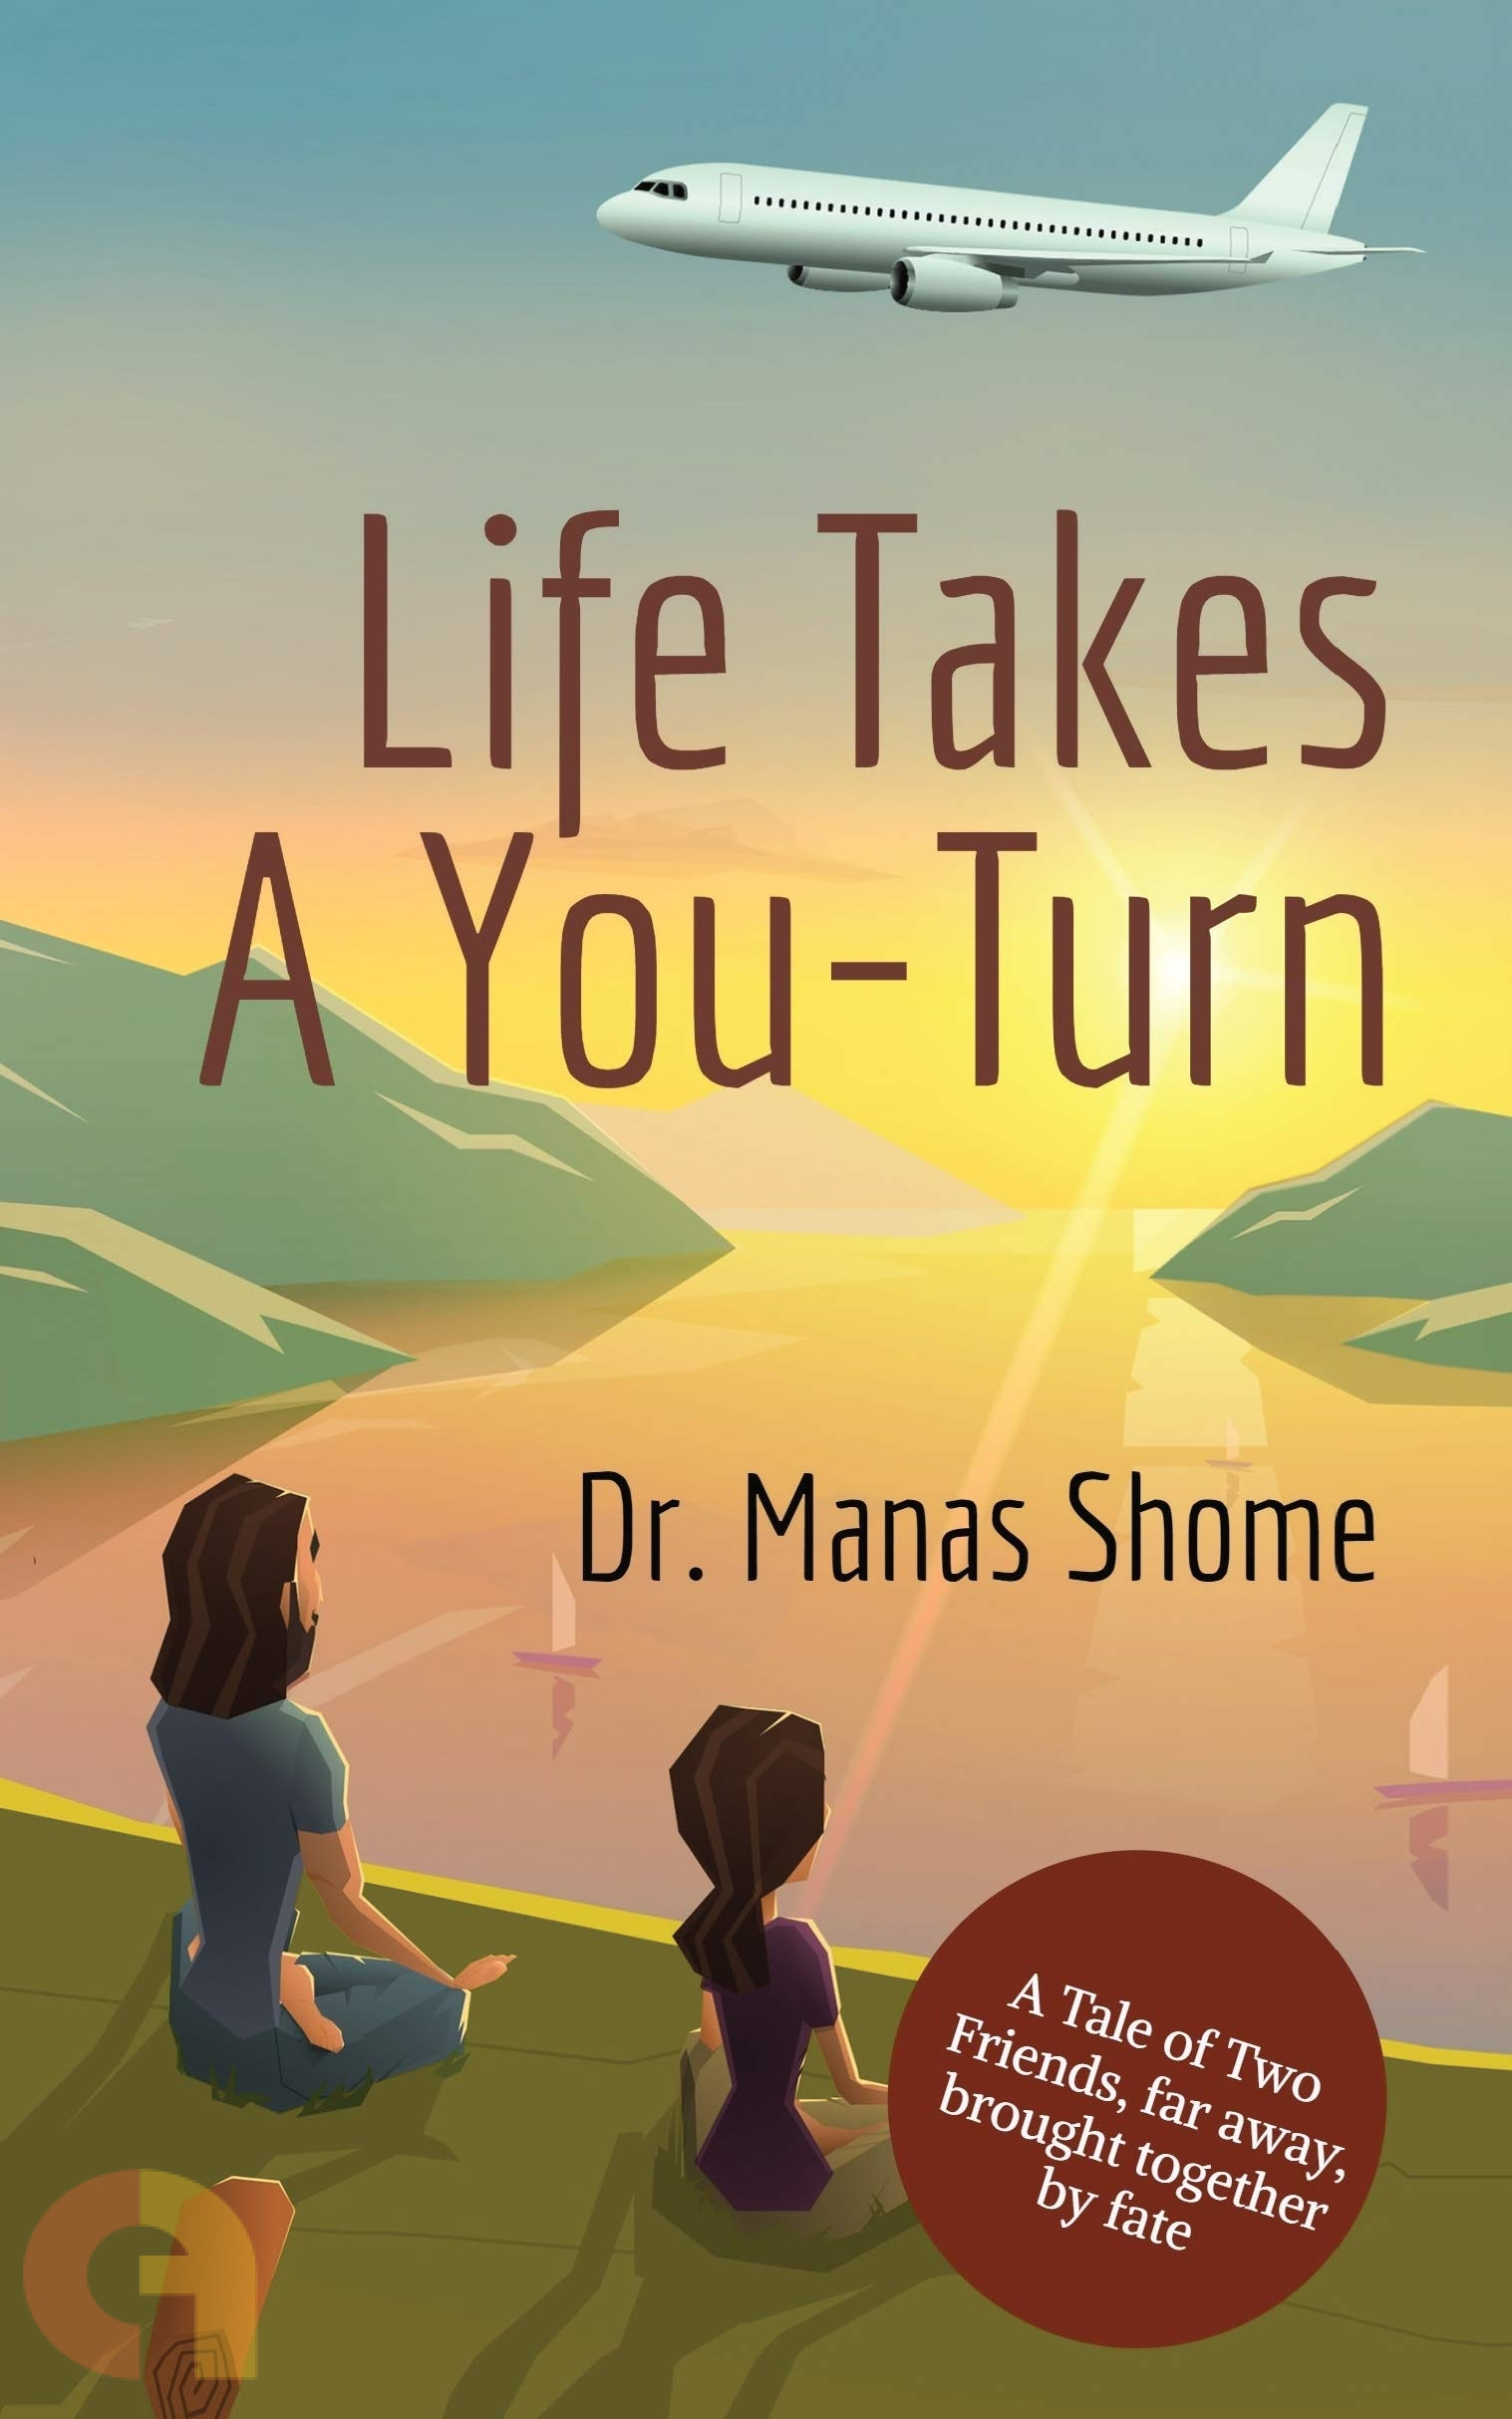 Life Takes A You-Turn